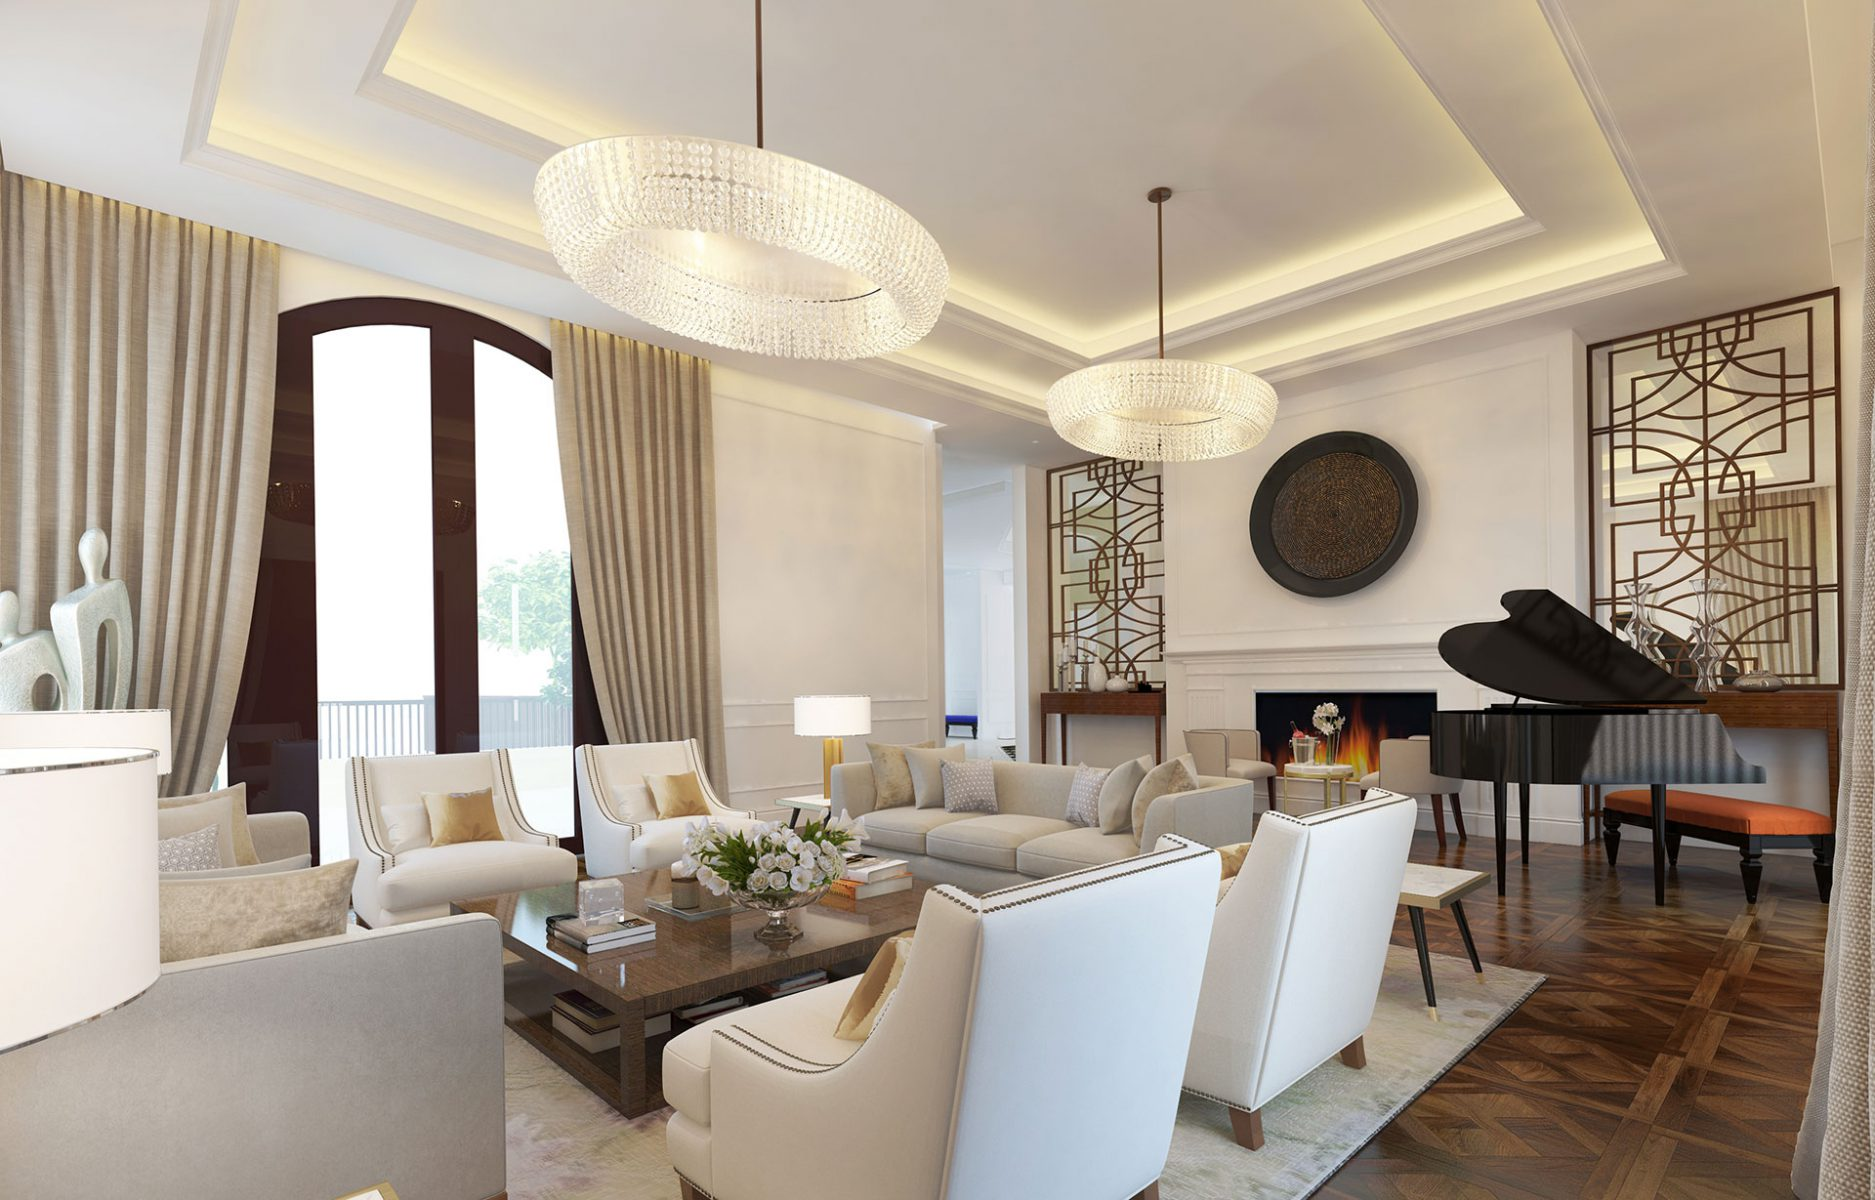 Get to know the amazing Private Villa Interiors in Dubai Hills 2 private villa interiors Get To Know The Amazing Private Villa Interiors in Dubai Hills! Get to know the amazing Private Villa Interiors in Dubai Hills 2